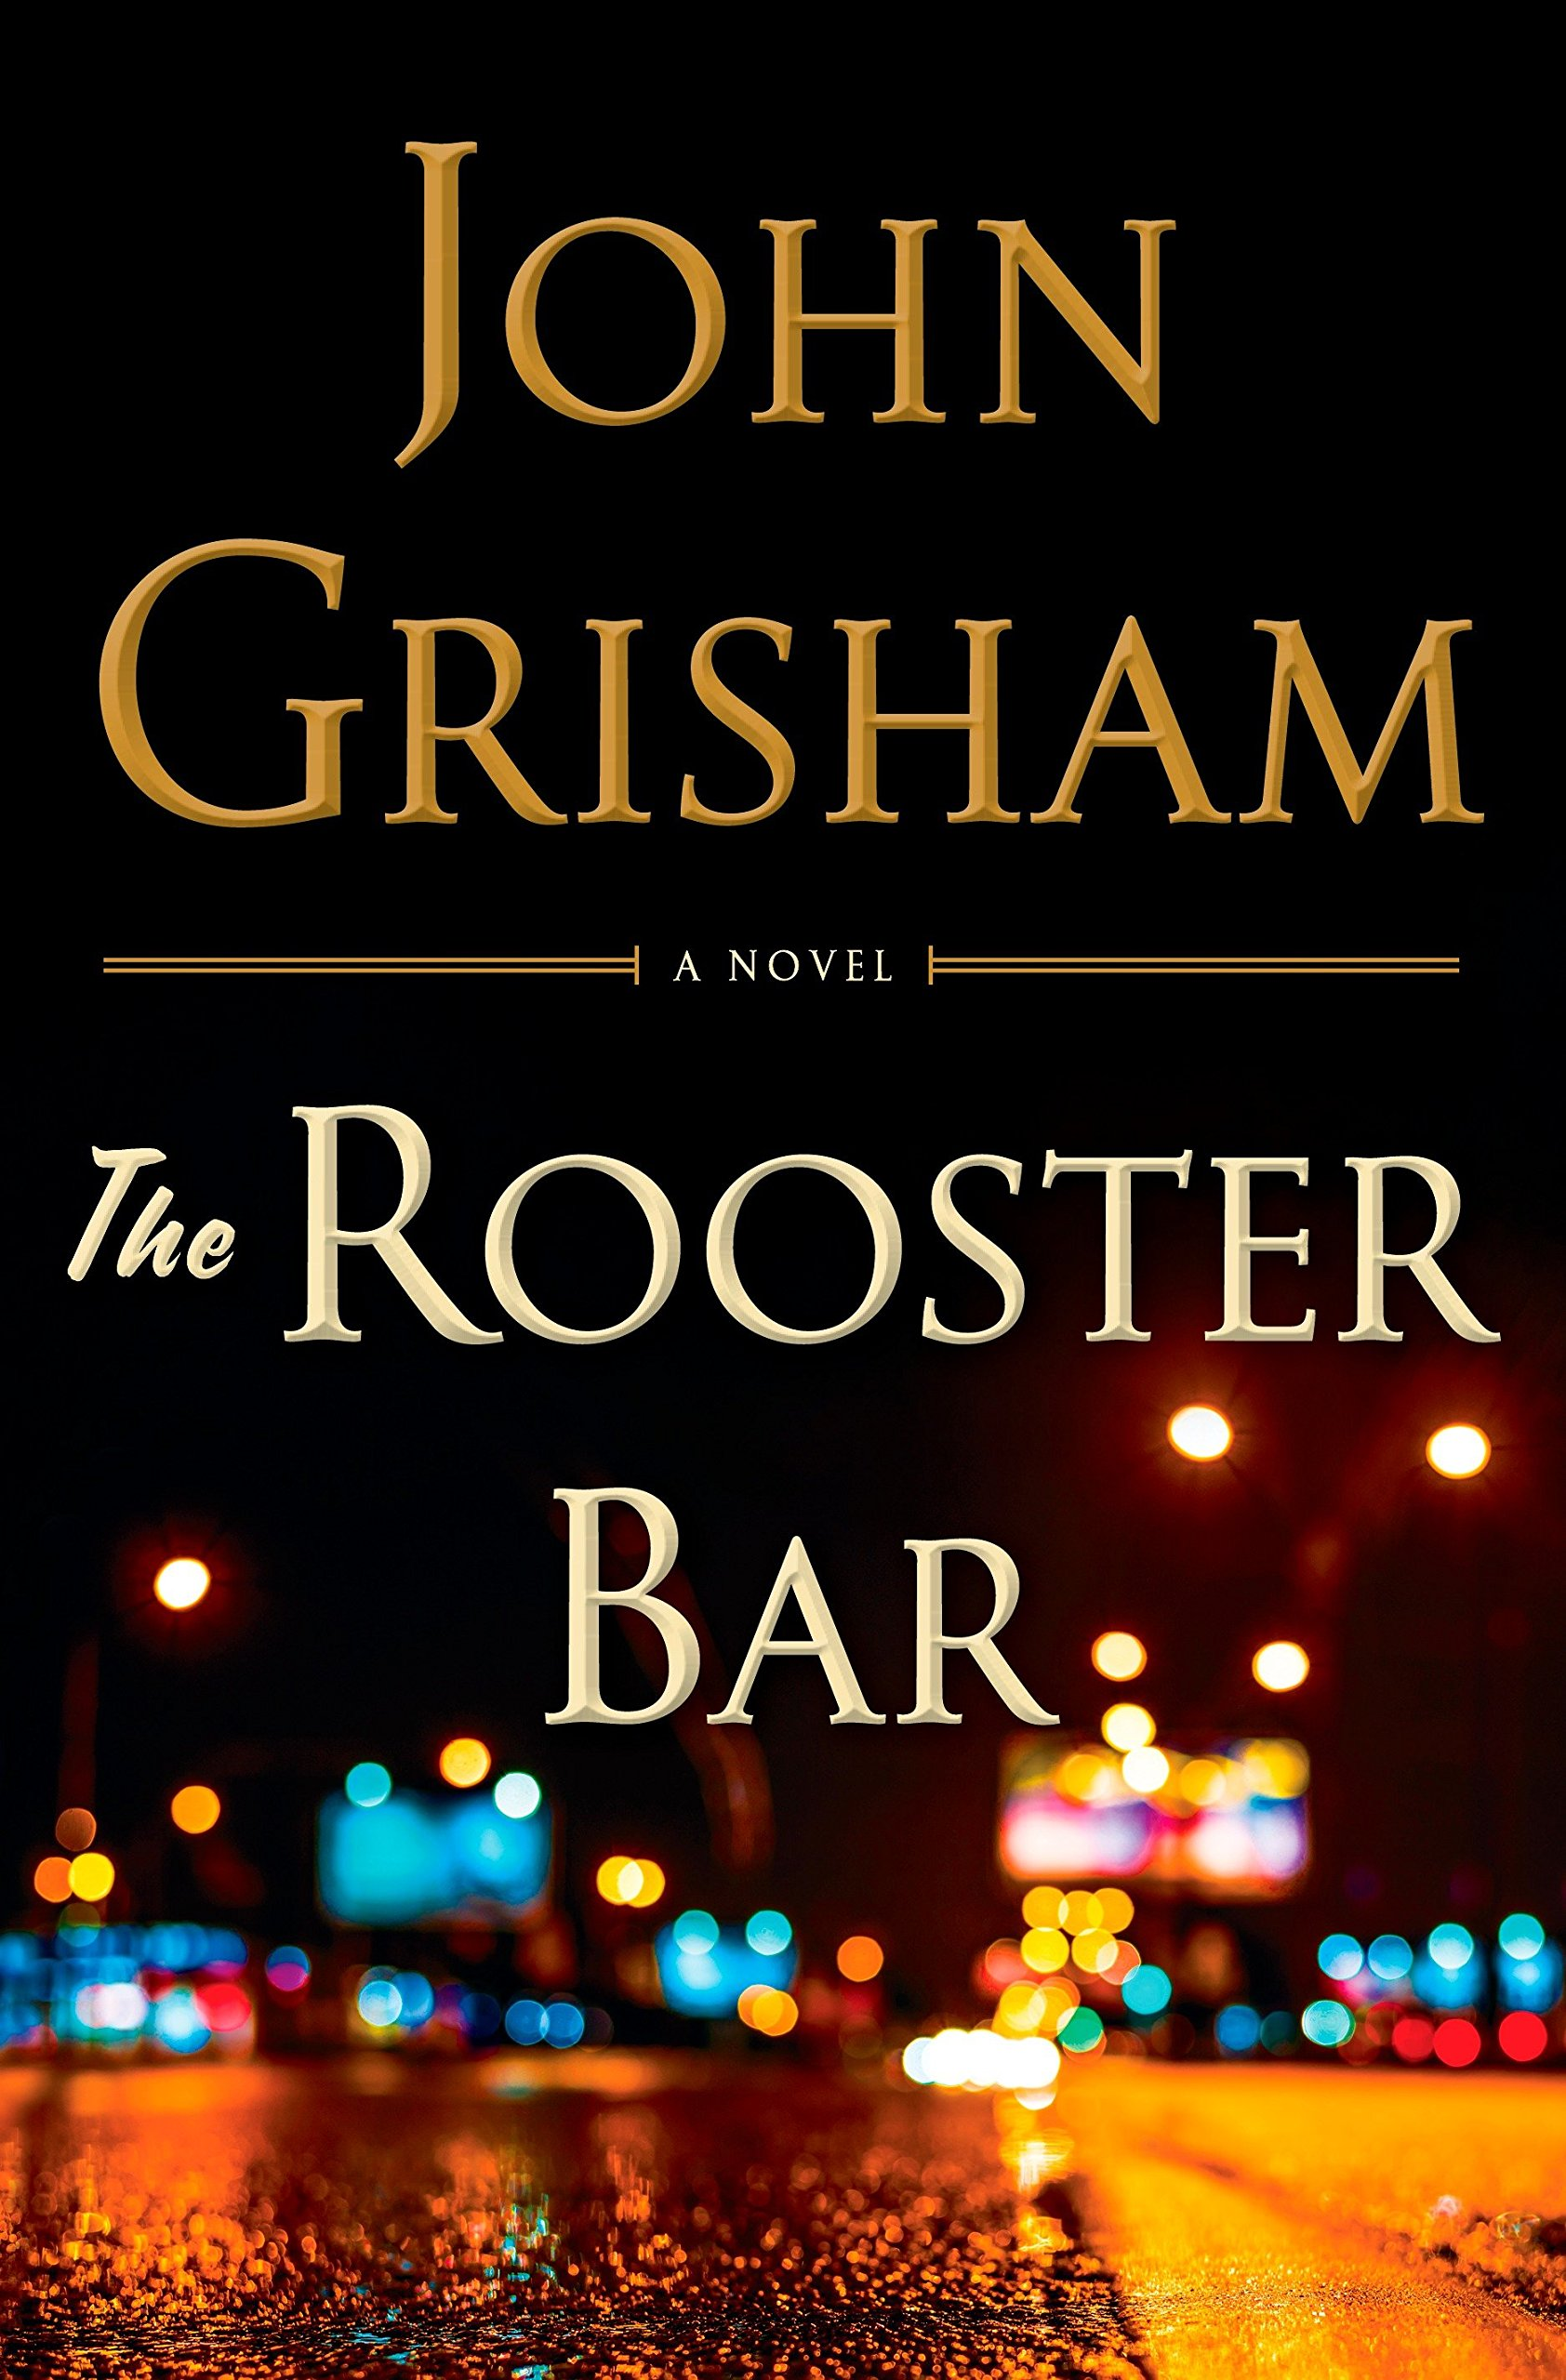 The Rooster Bar: Grisham, John: 4708364220923: Amazon.com: Books